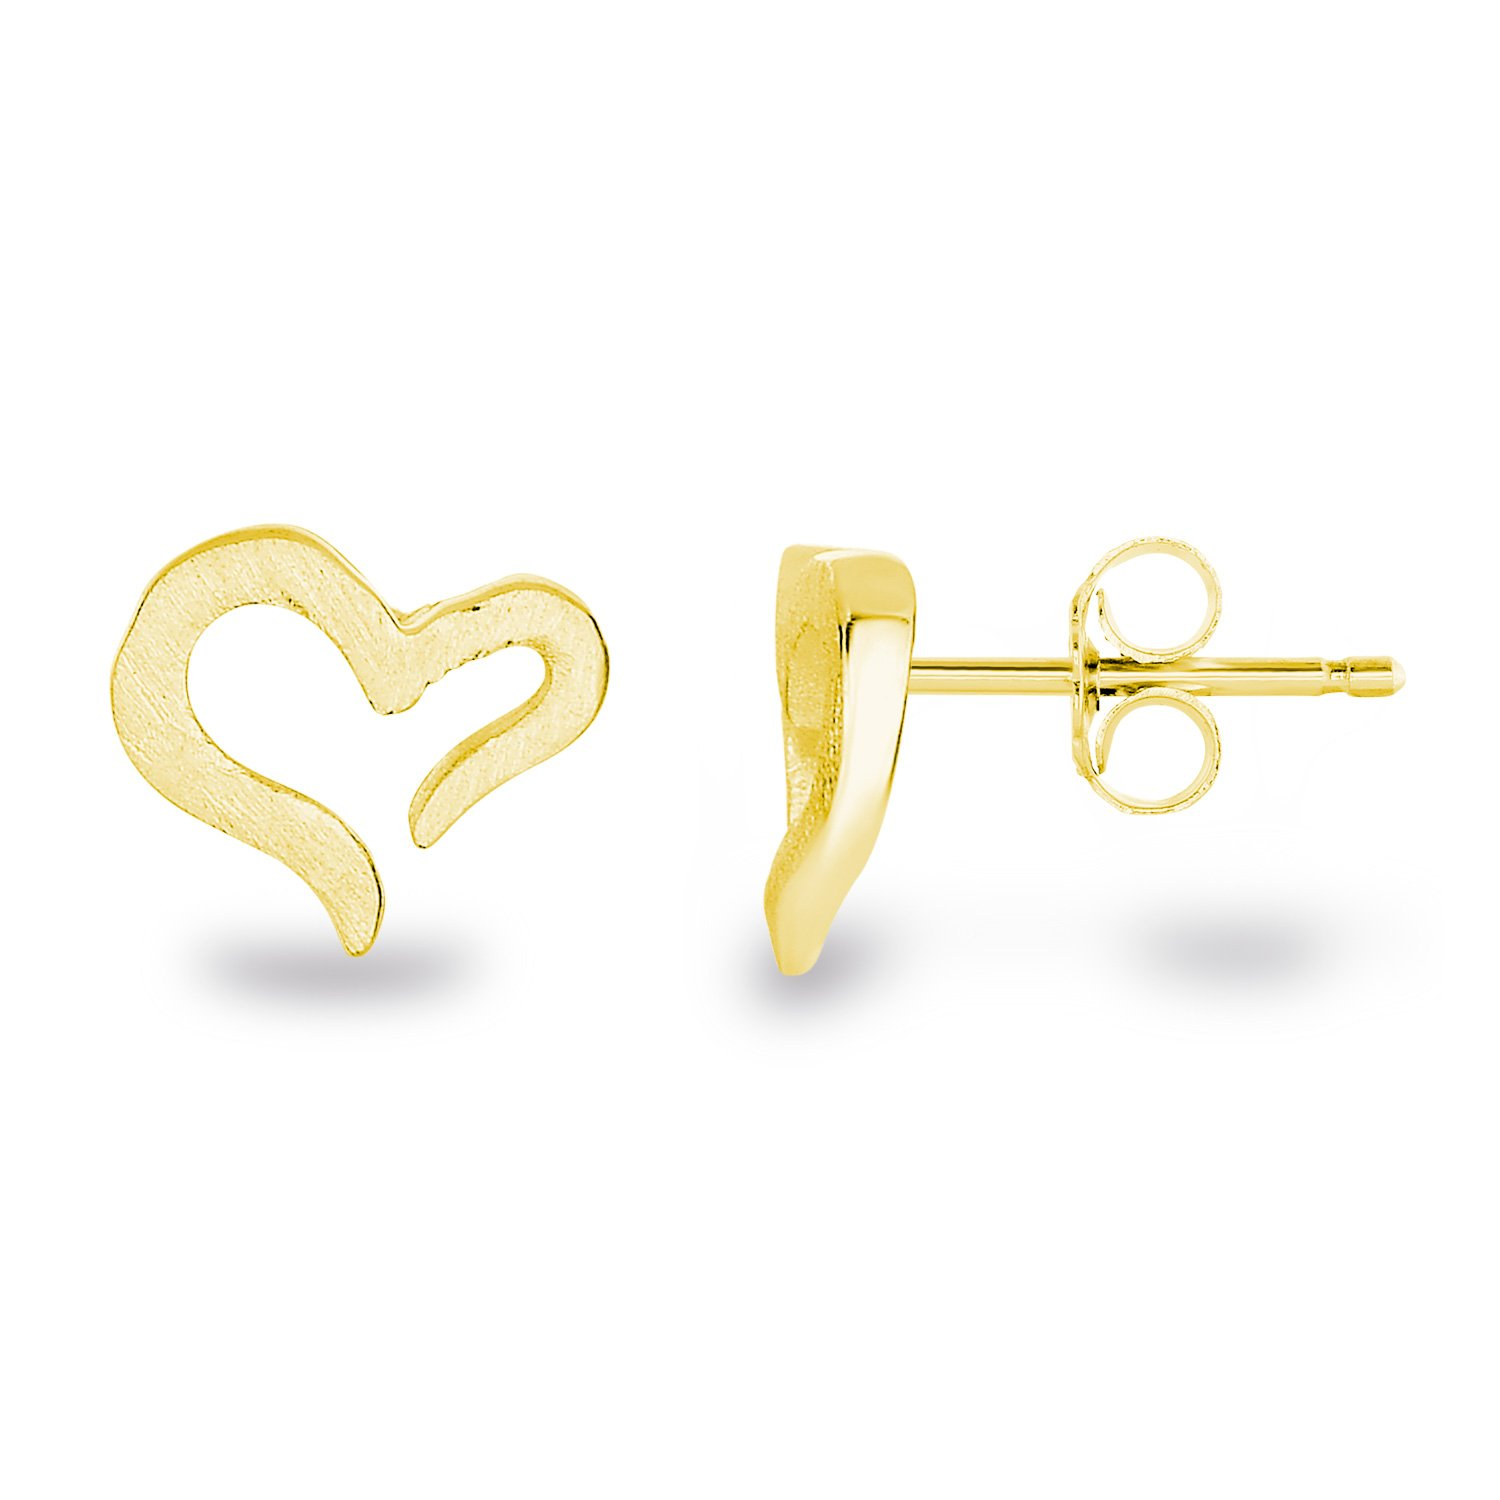 14k Yellow Gold-Plated Sterling Silver Matte Finish Brushed Texture Hollow Open Heart Stud Earrings